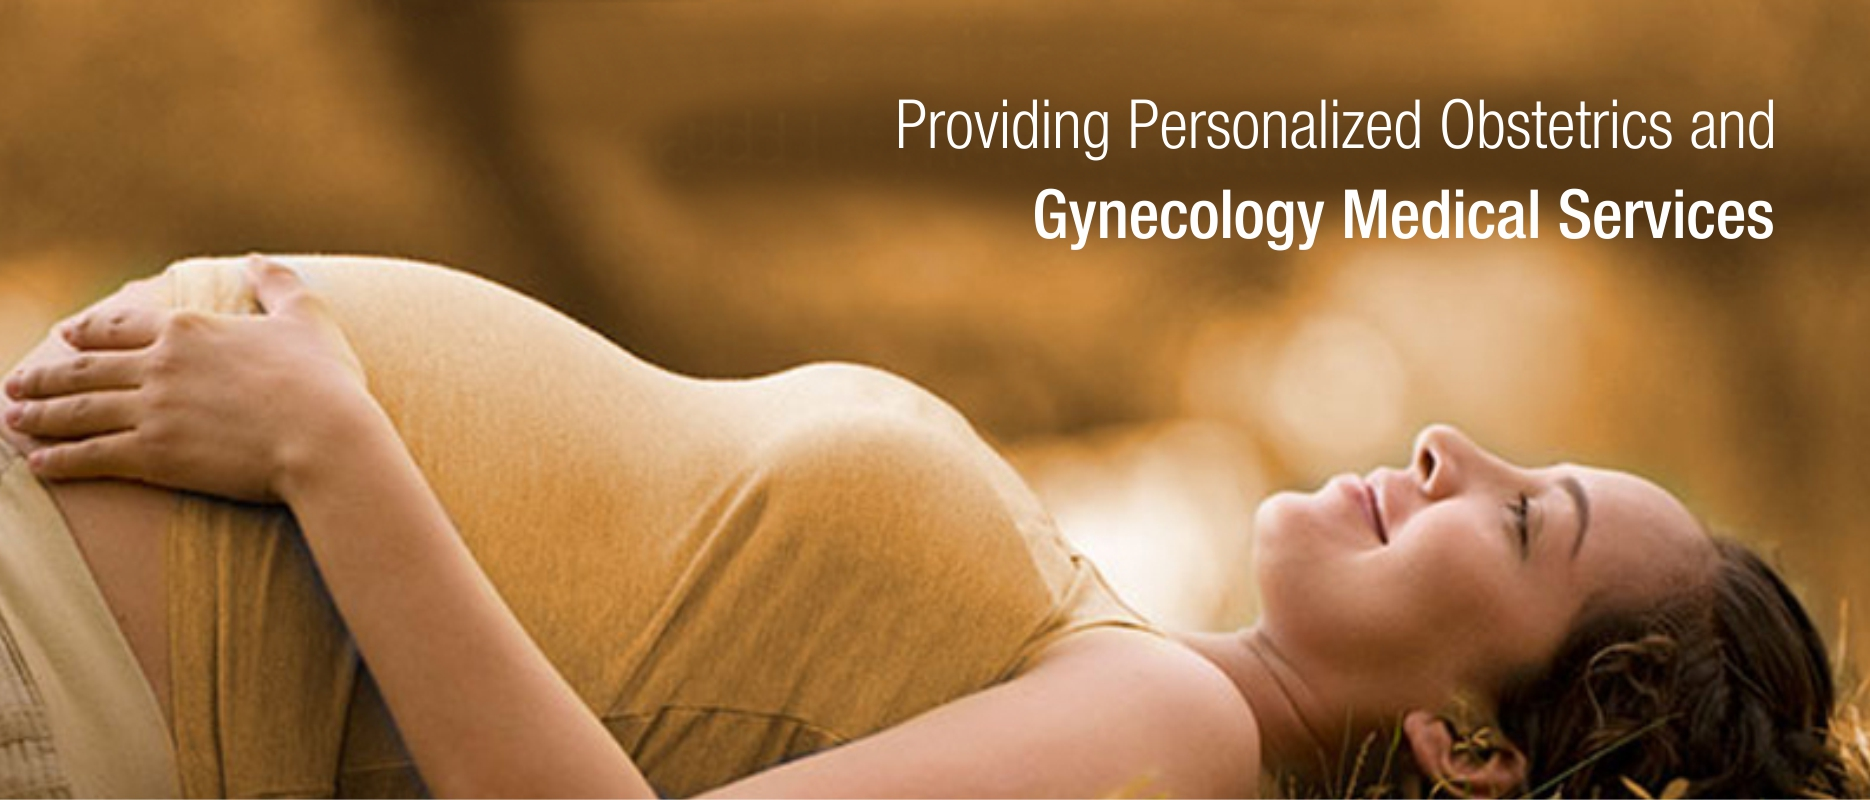 Pregnancy Care Center Chennai